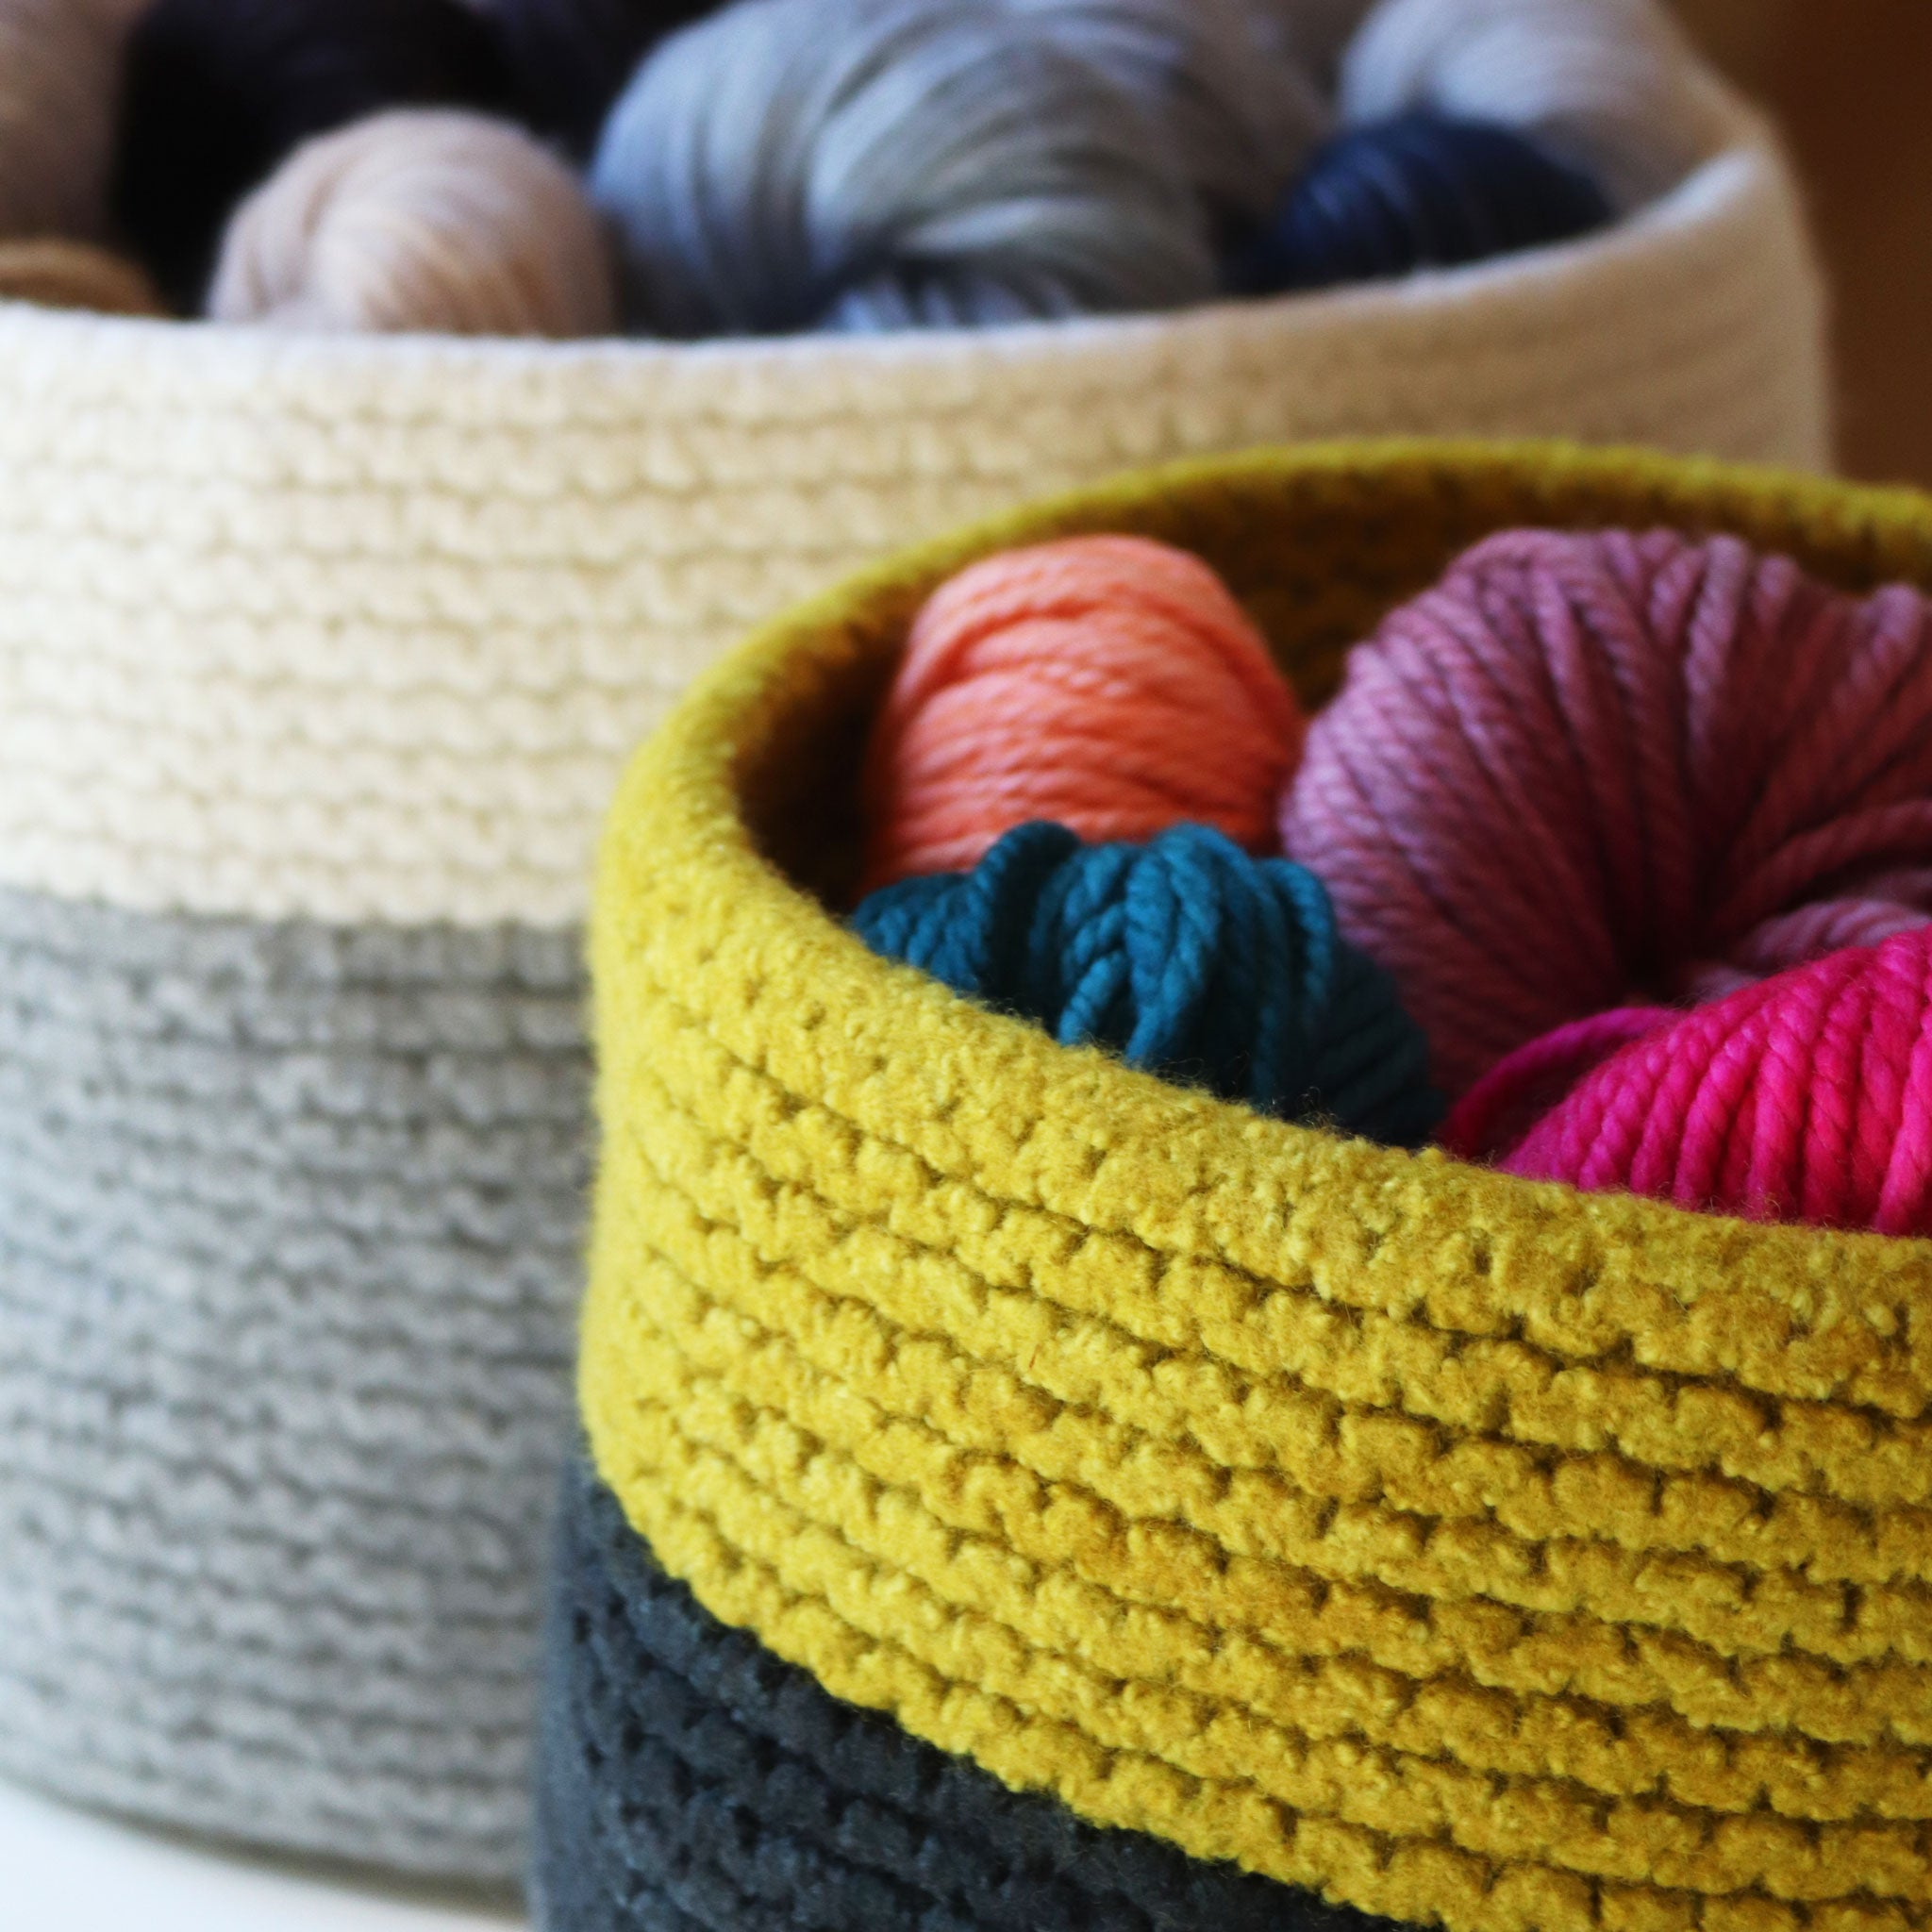 Felted Basket No. 1